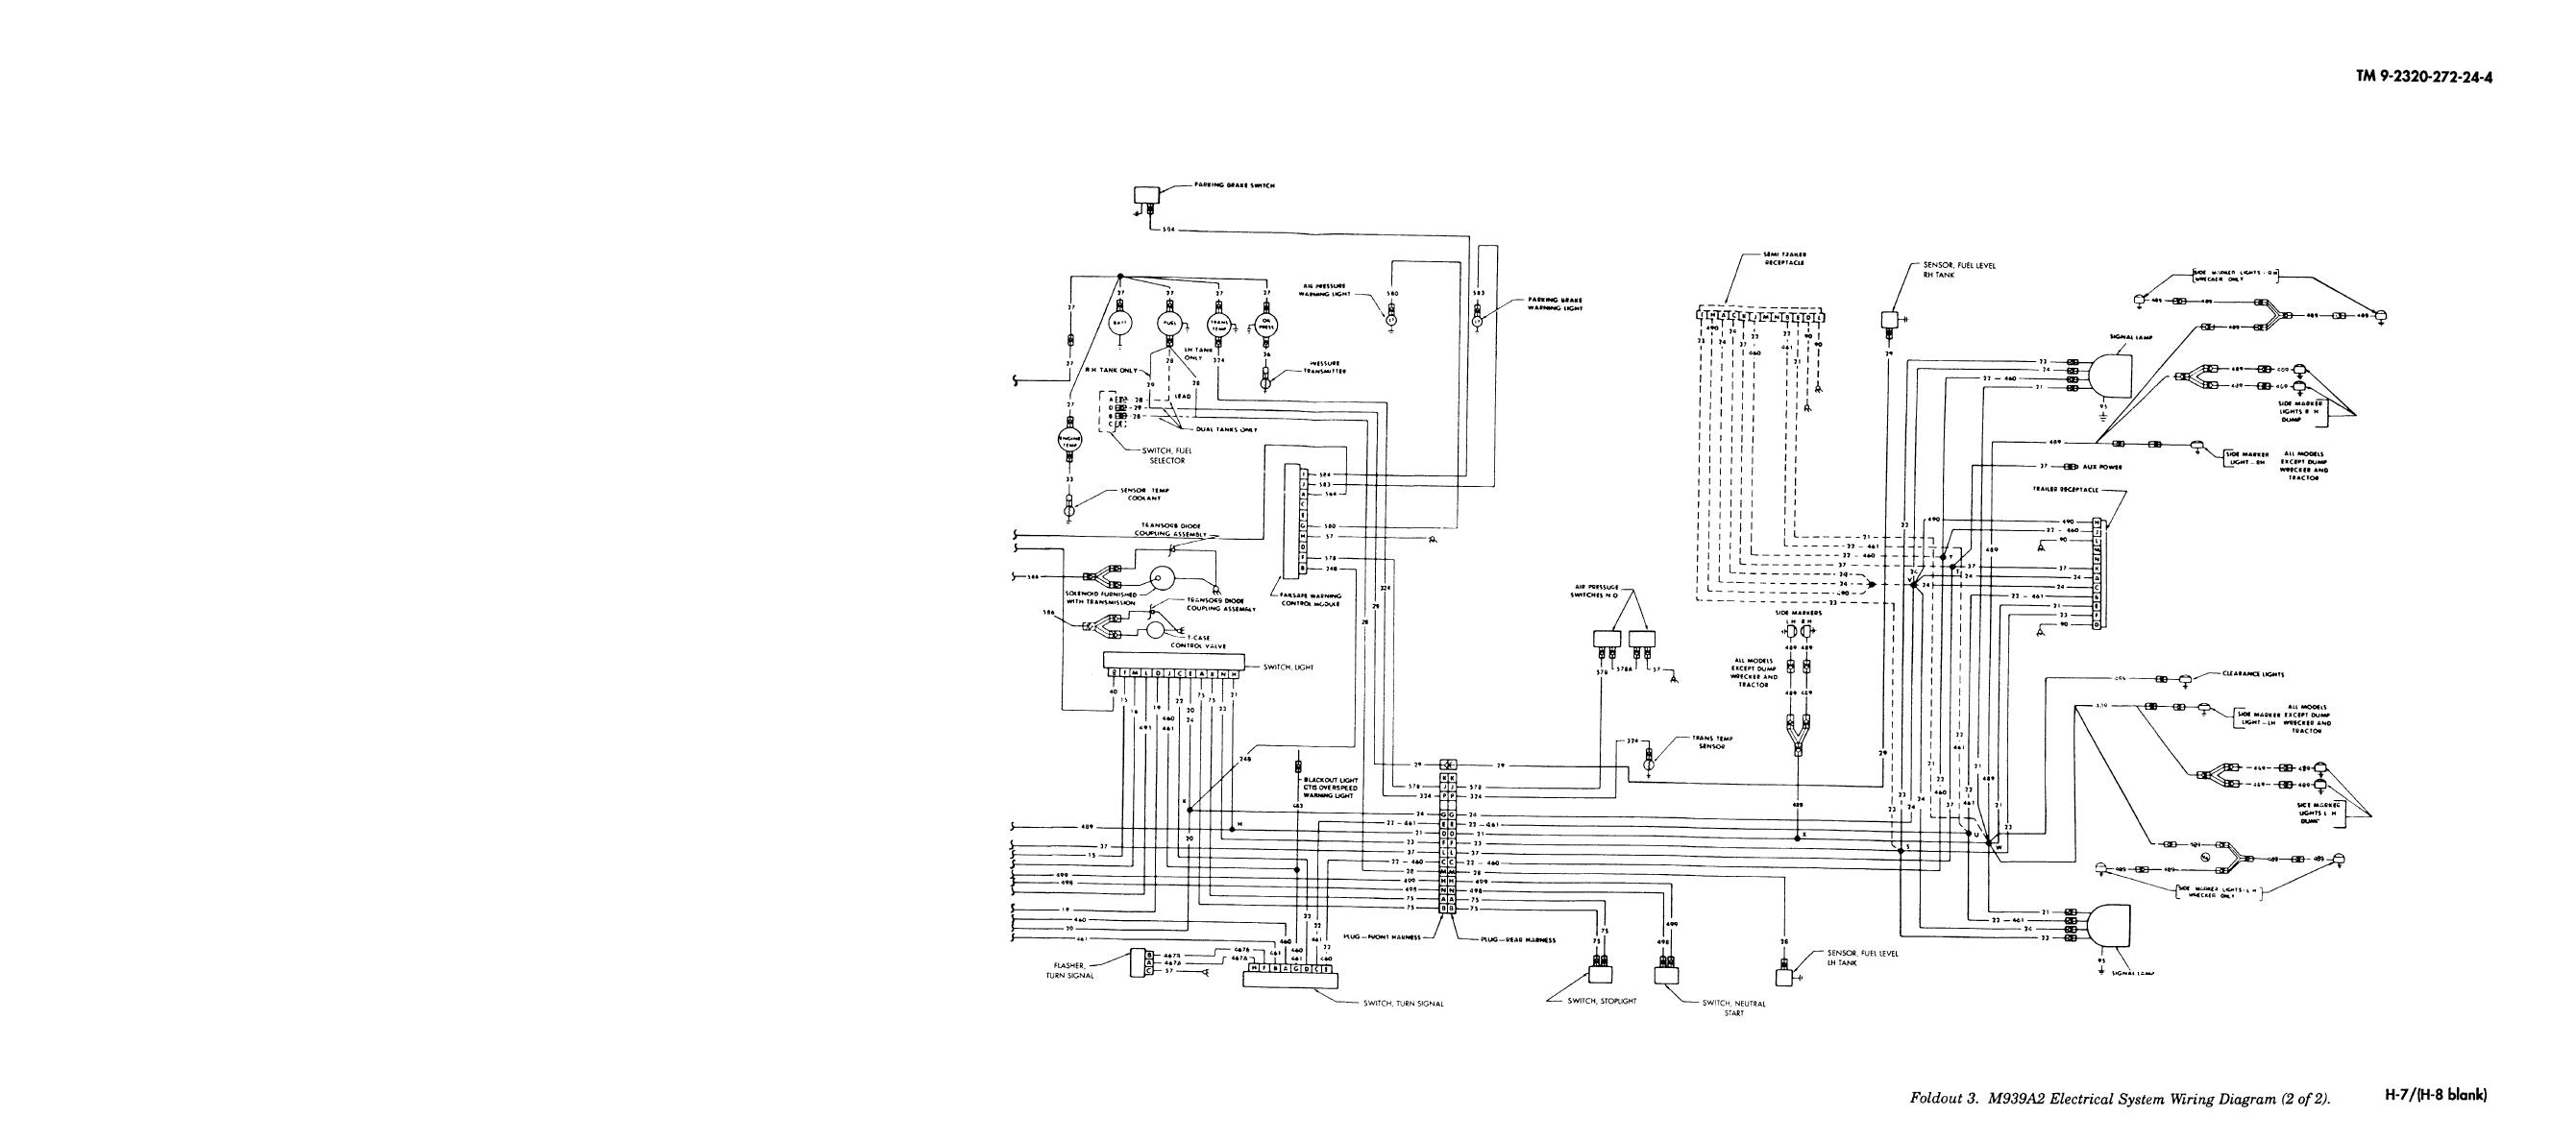 Foldout 3. M939A2 Electrical System Wiring Diagram (2 of 2